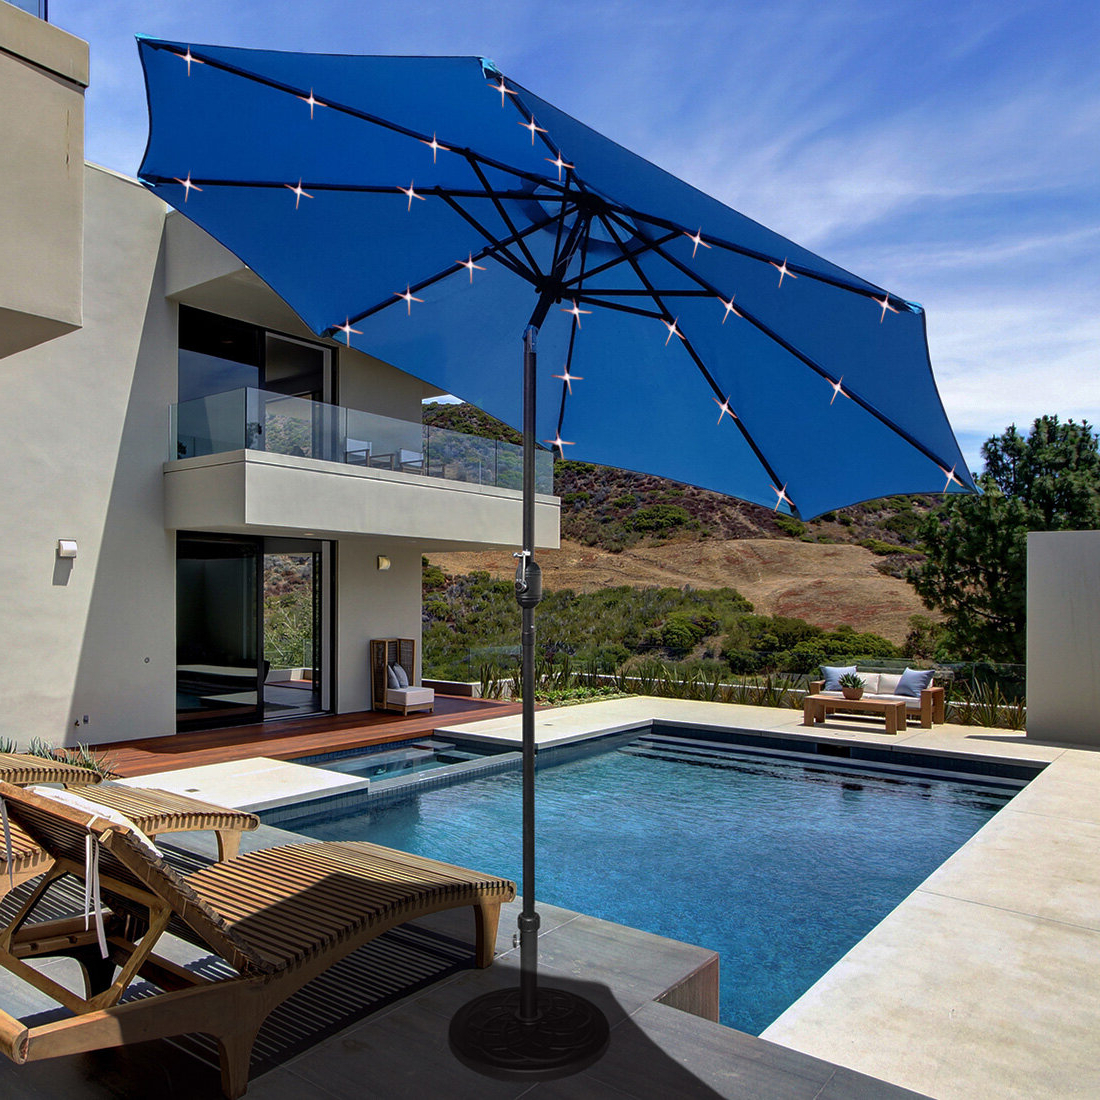 Fashionable Brecht Lighted Umbrellas For Solar Led Lighted Patio 9' Market Umbrella (View 16 of 20)